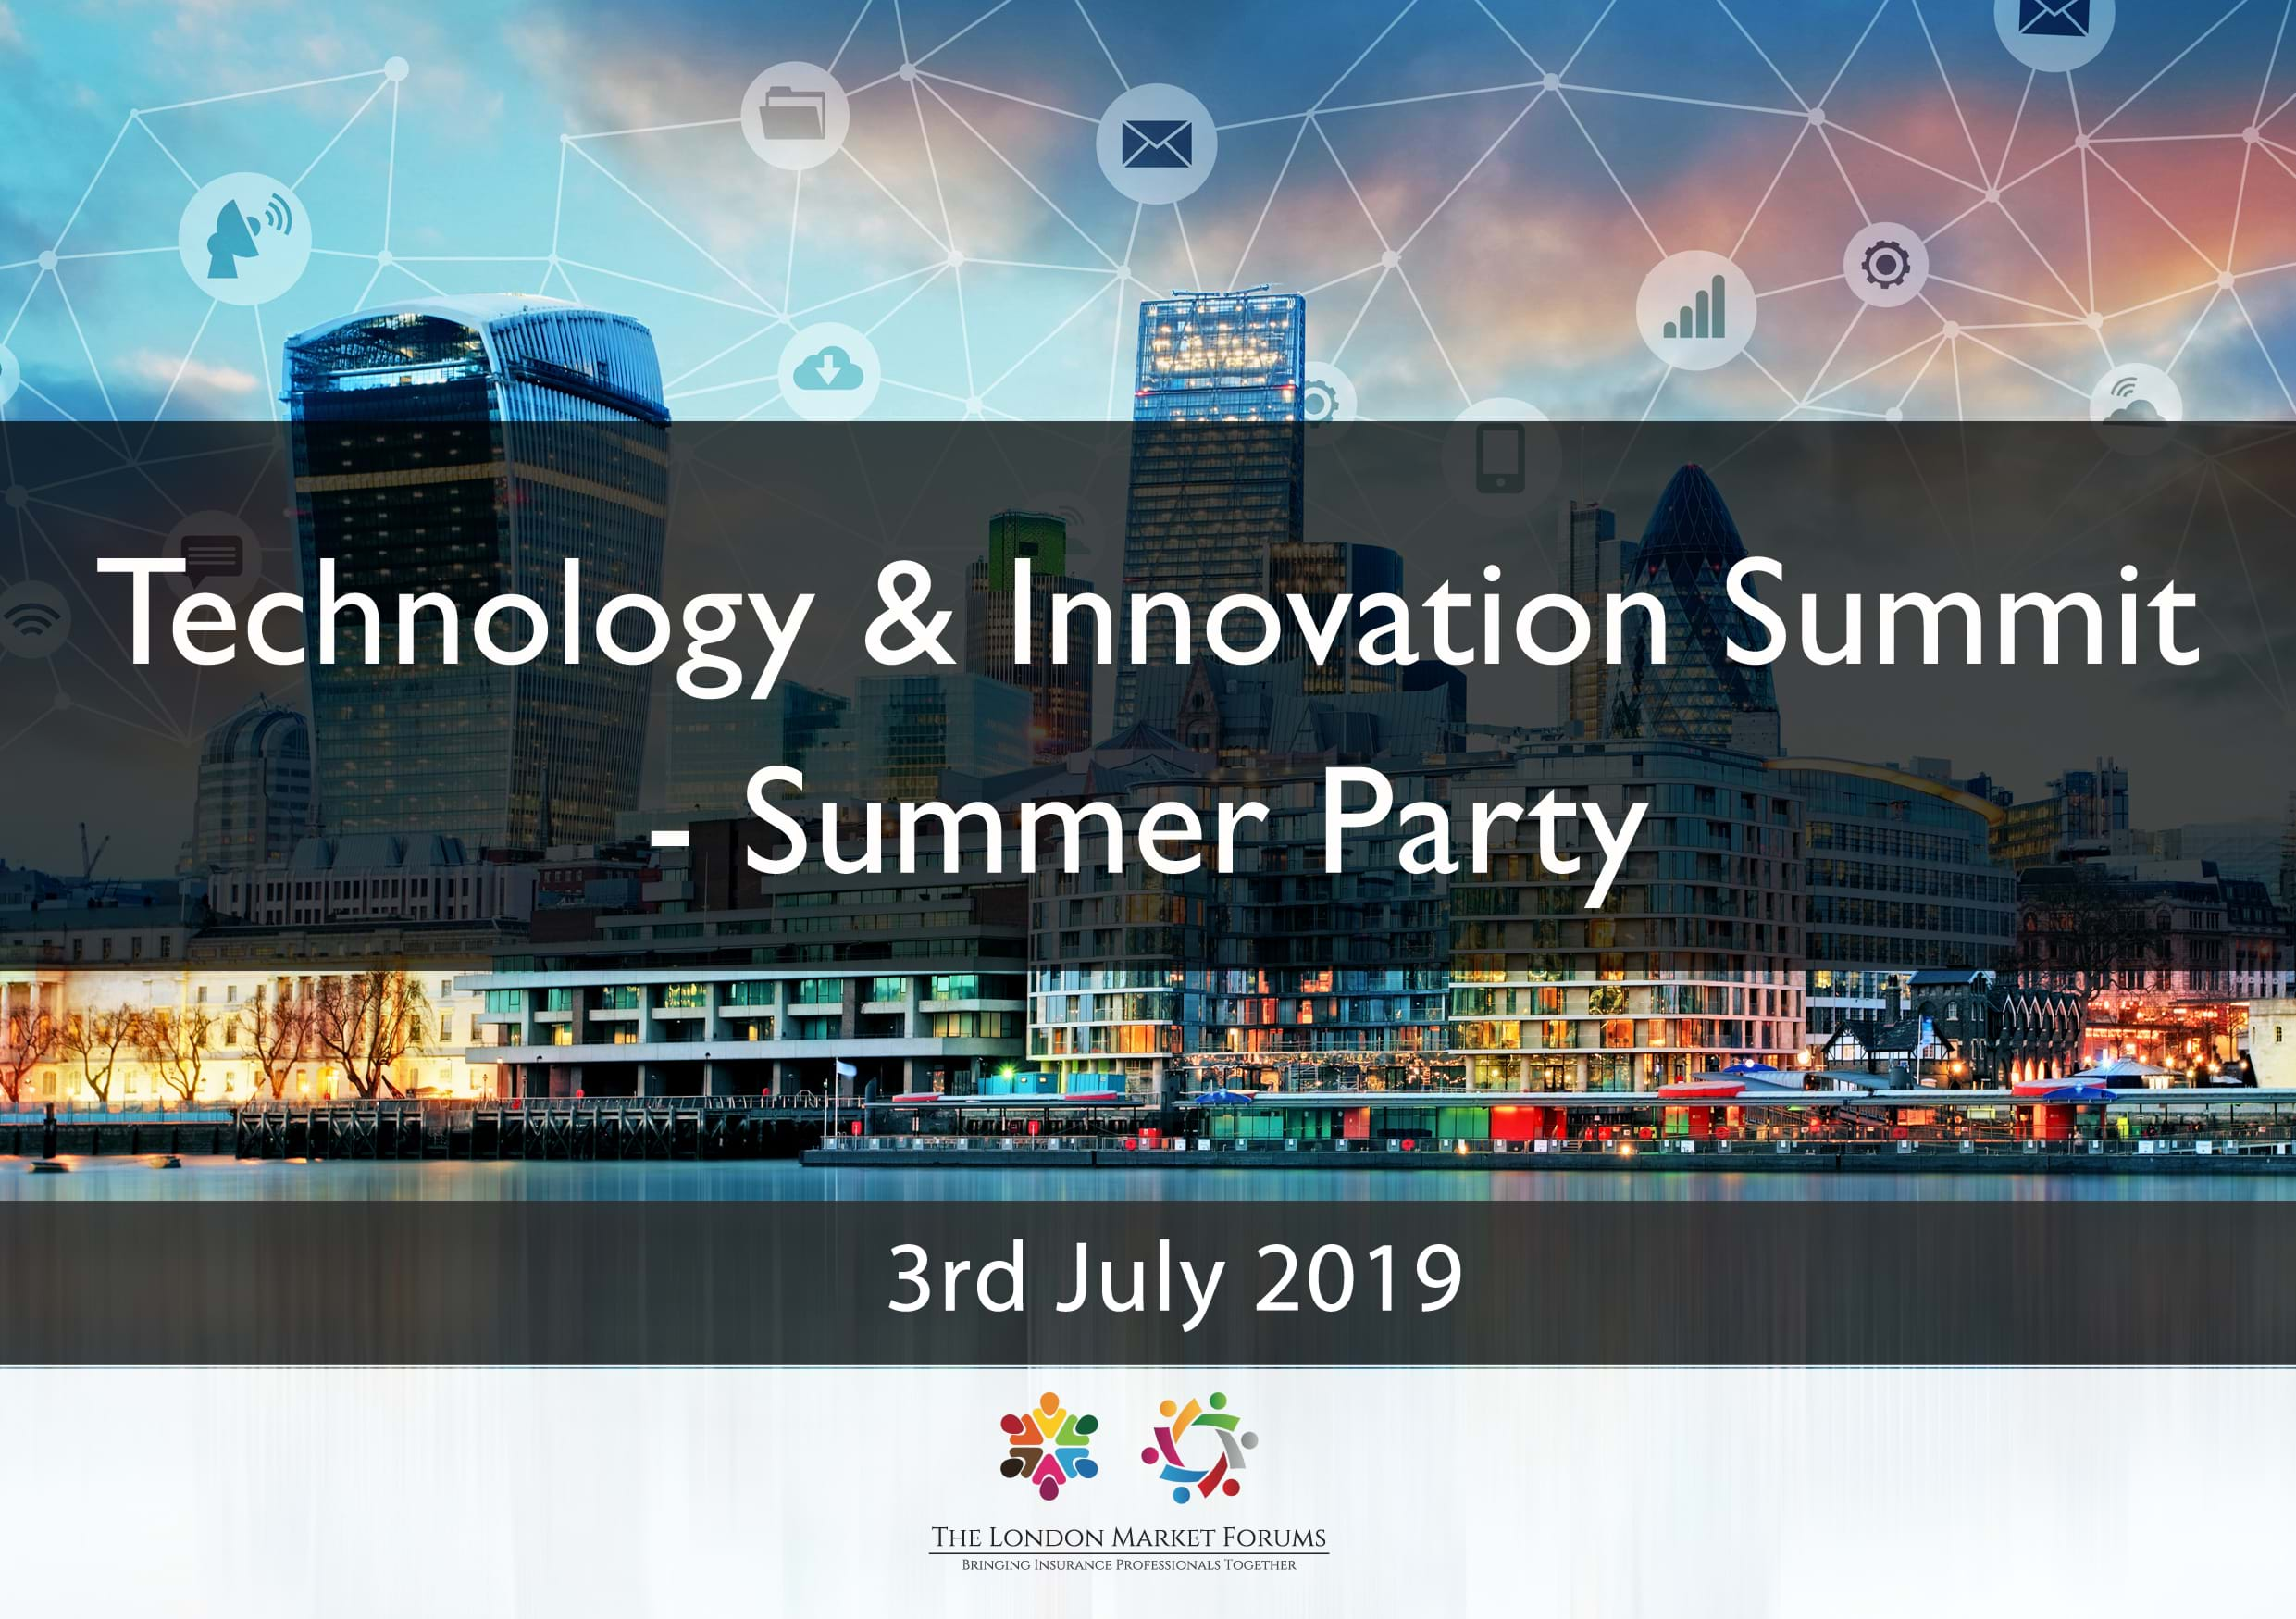 Technology & Innovation Summit - Summer Party - 3rd July 2019